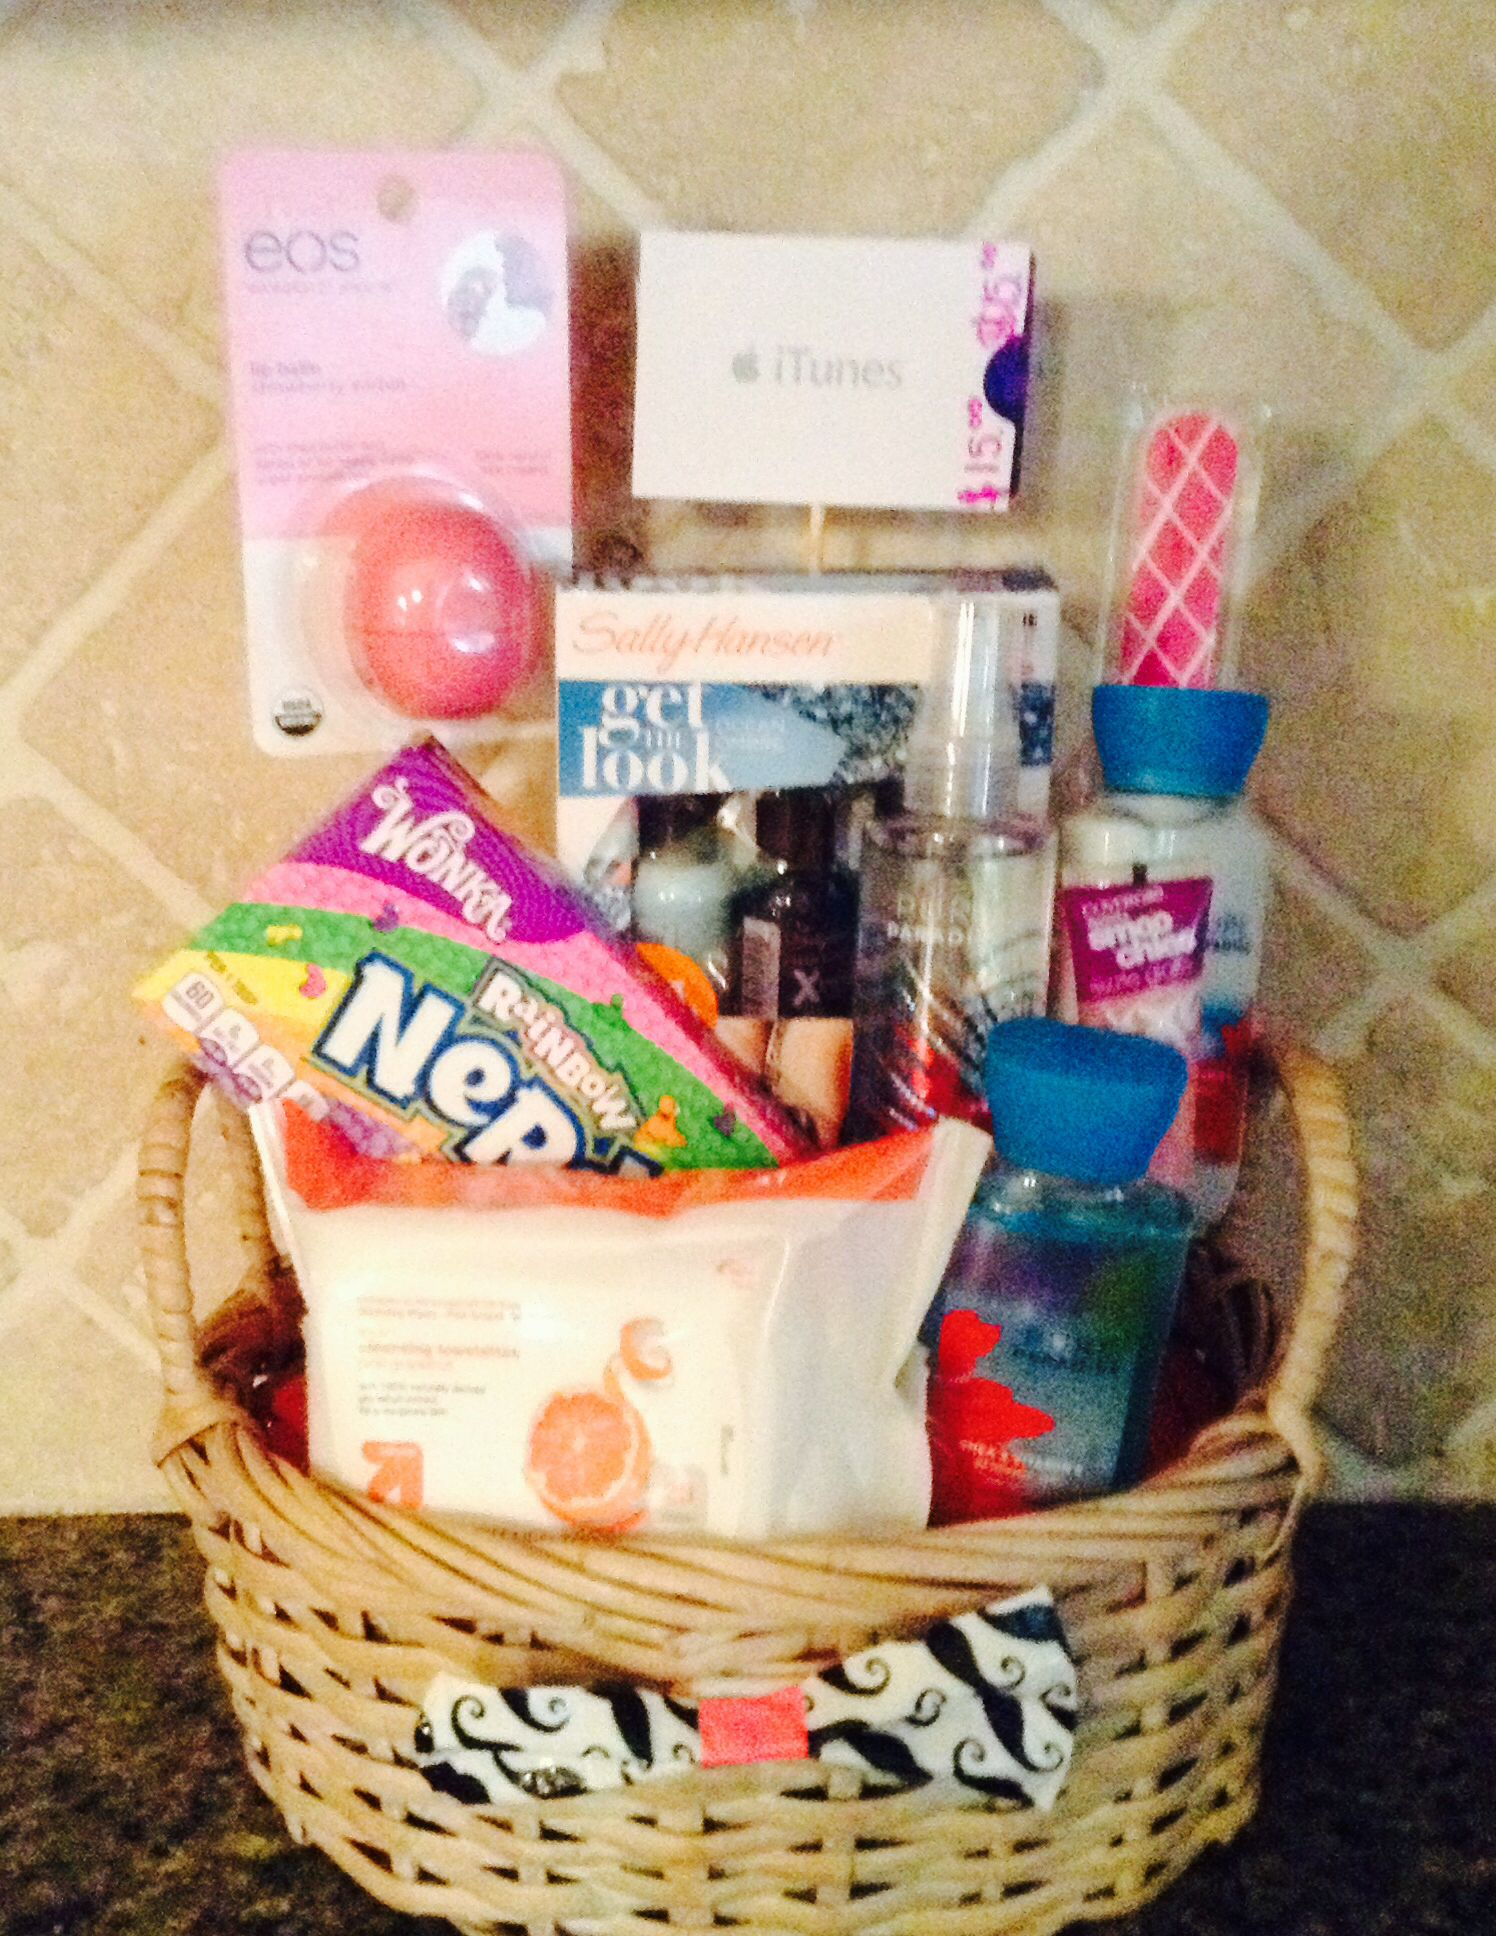 This basket includes Rainbow Nerds, $15 iTunes, Nail file, eos ...